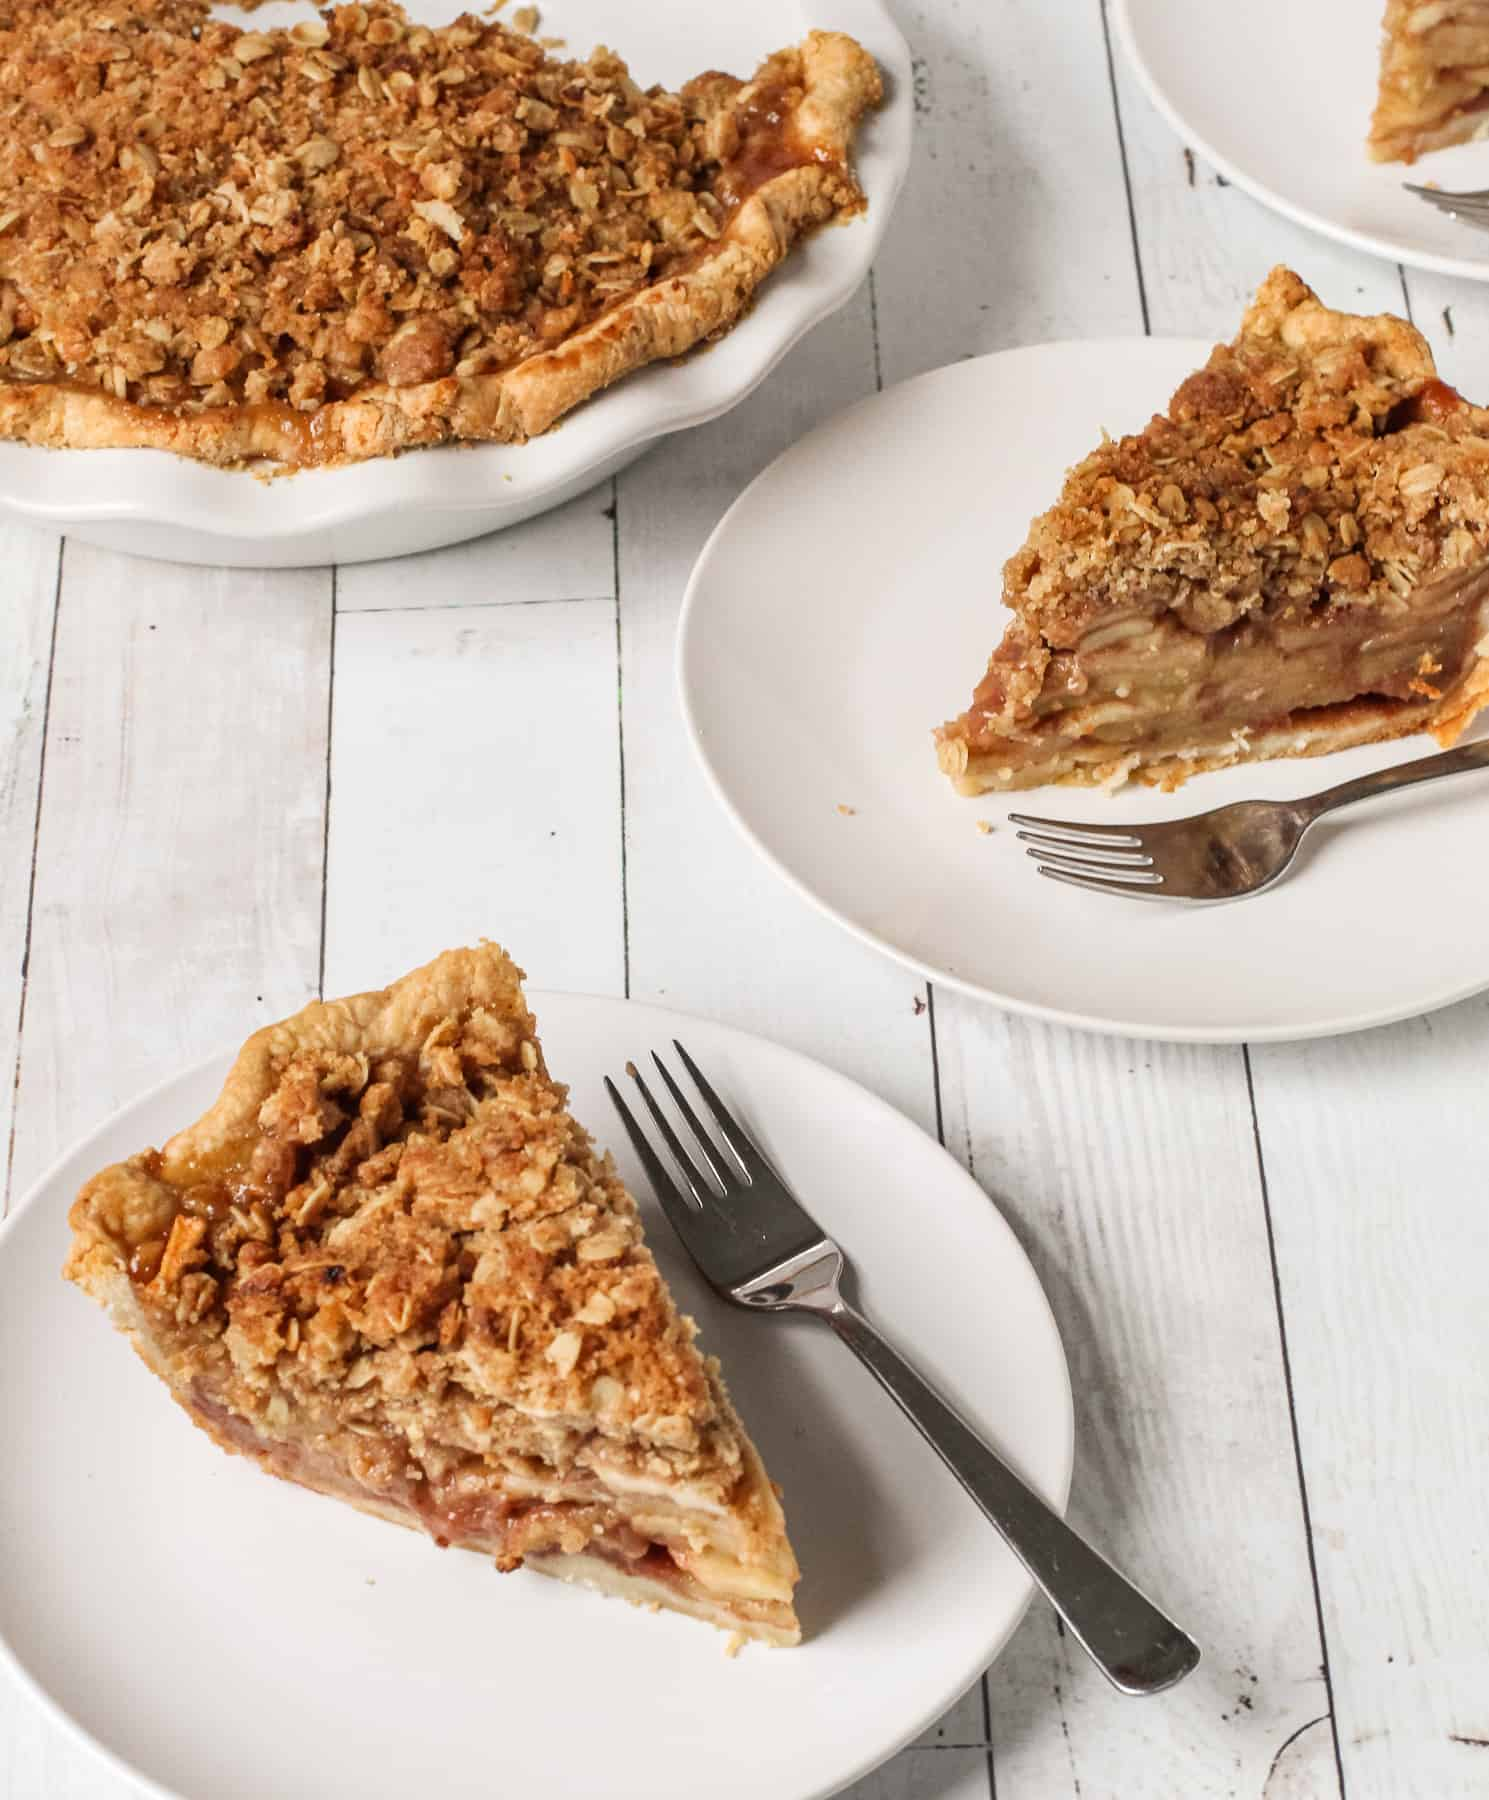 Two slices of apple crumble pie